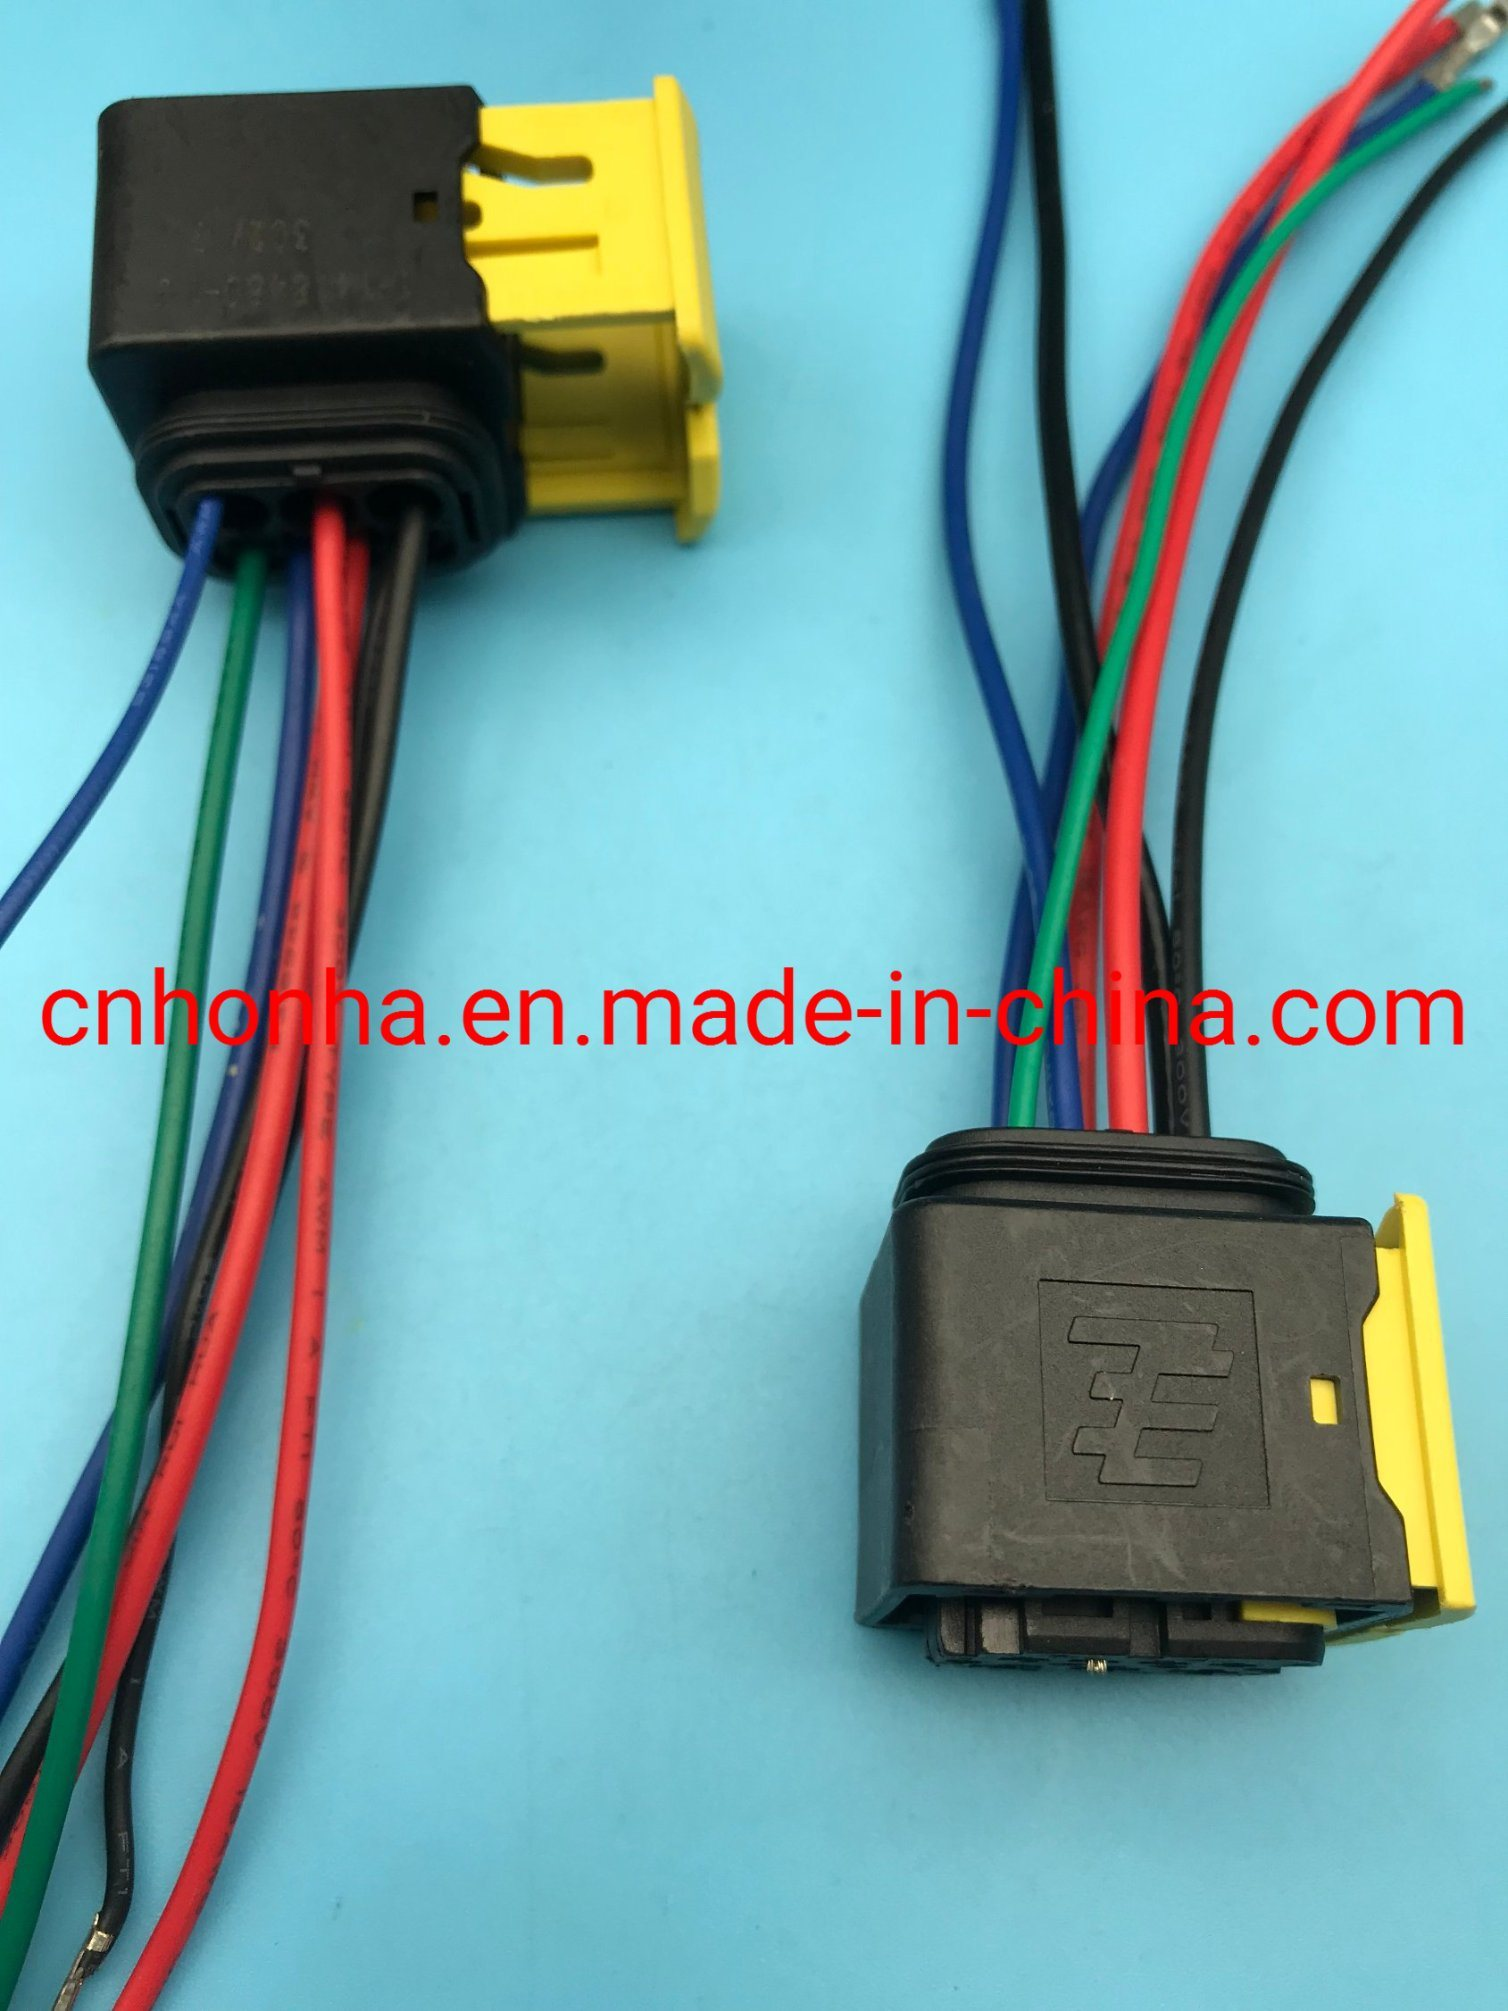 [DIAGRAM_5FD]  China 1-1418480-1 7 Pin Female Connector Auto Wiring Harness - China Auto Connector  Harness, 7 Pin Connector Harness | Female 7 Pin Wiring Harness |  | Honha Autoparts Group Co., Limited